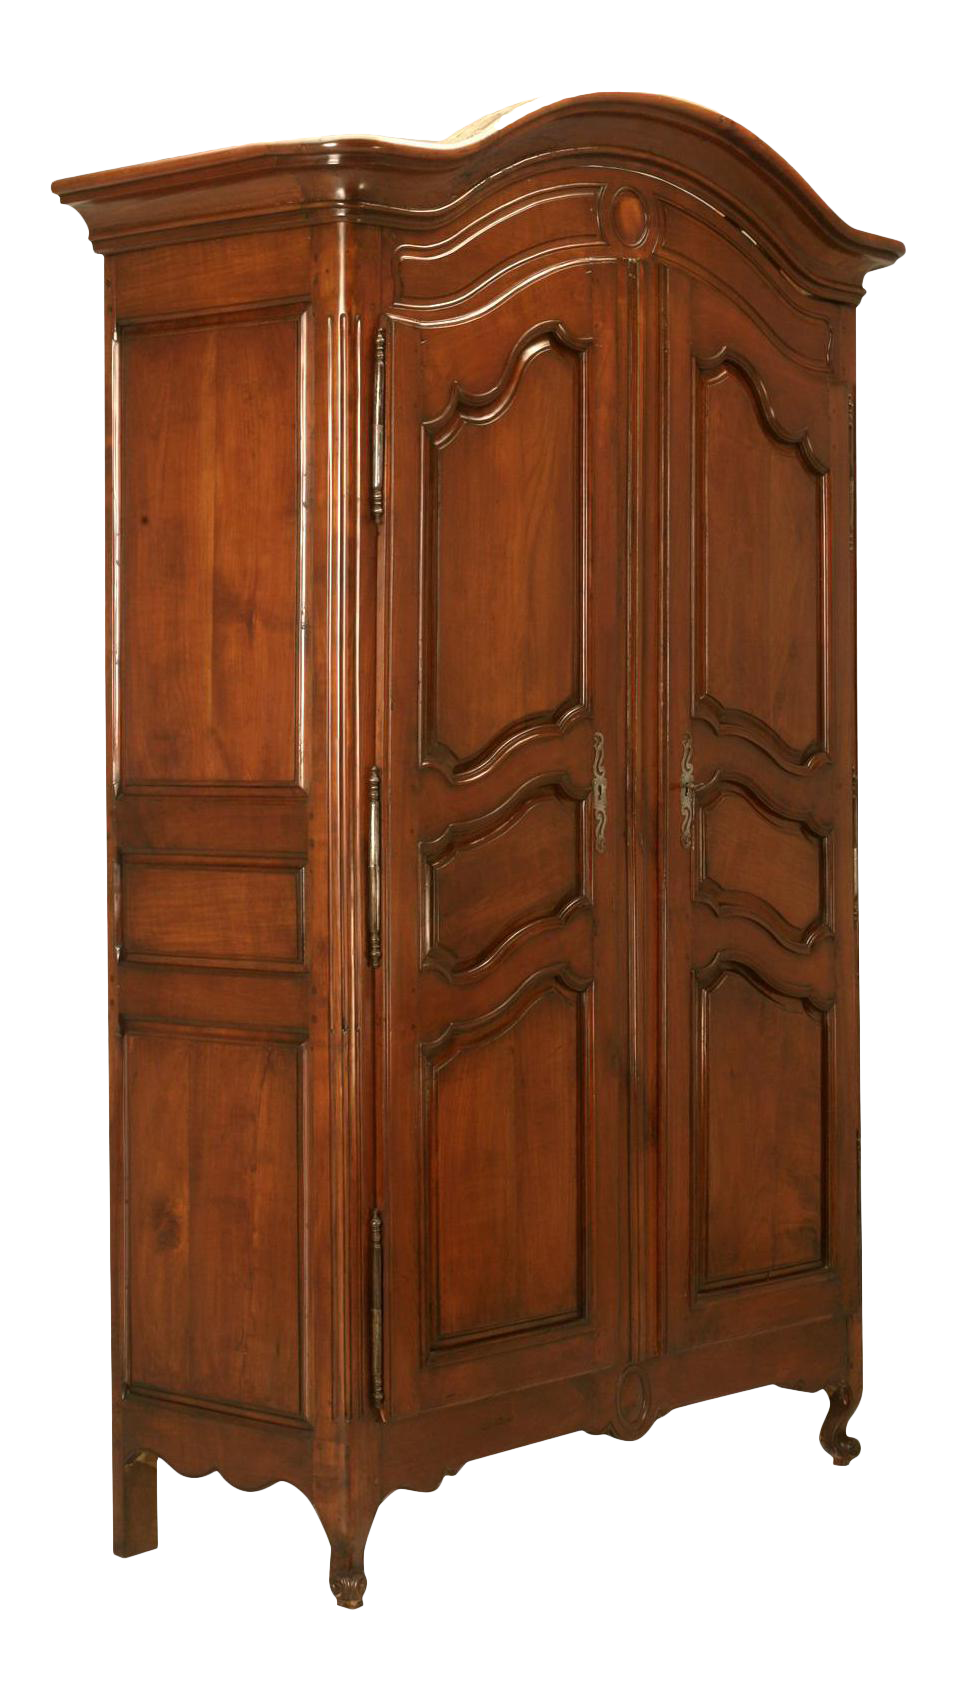 Circa 1800s French Louis XV Style Cherry Wood Armoire